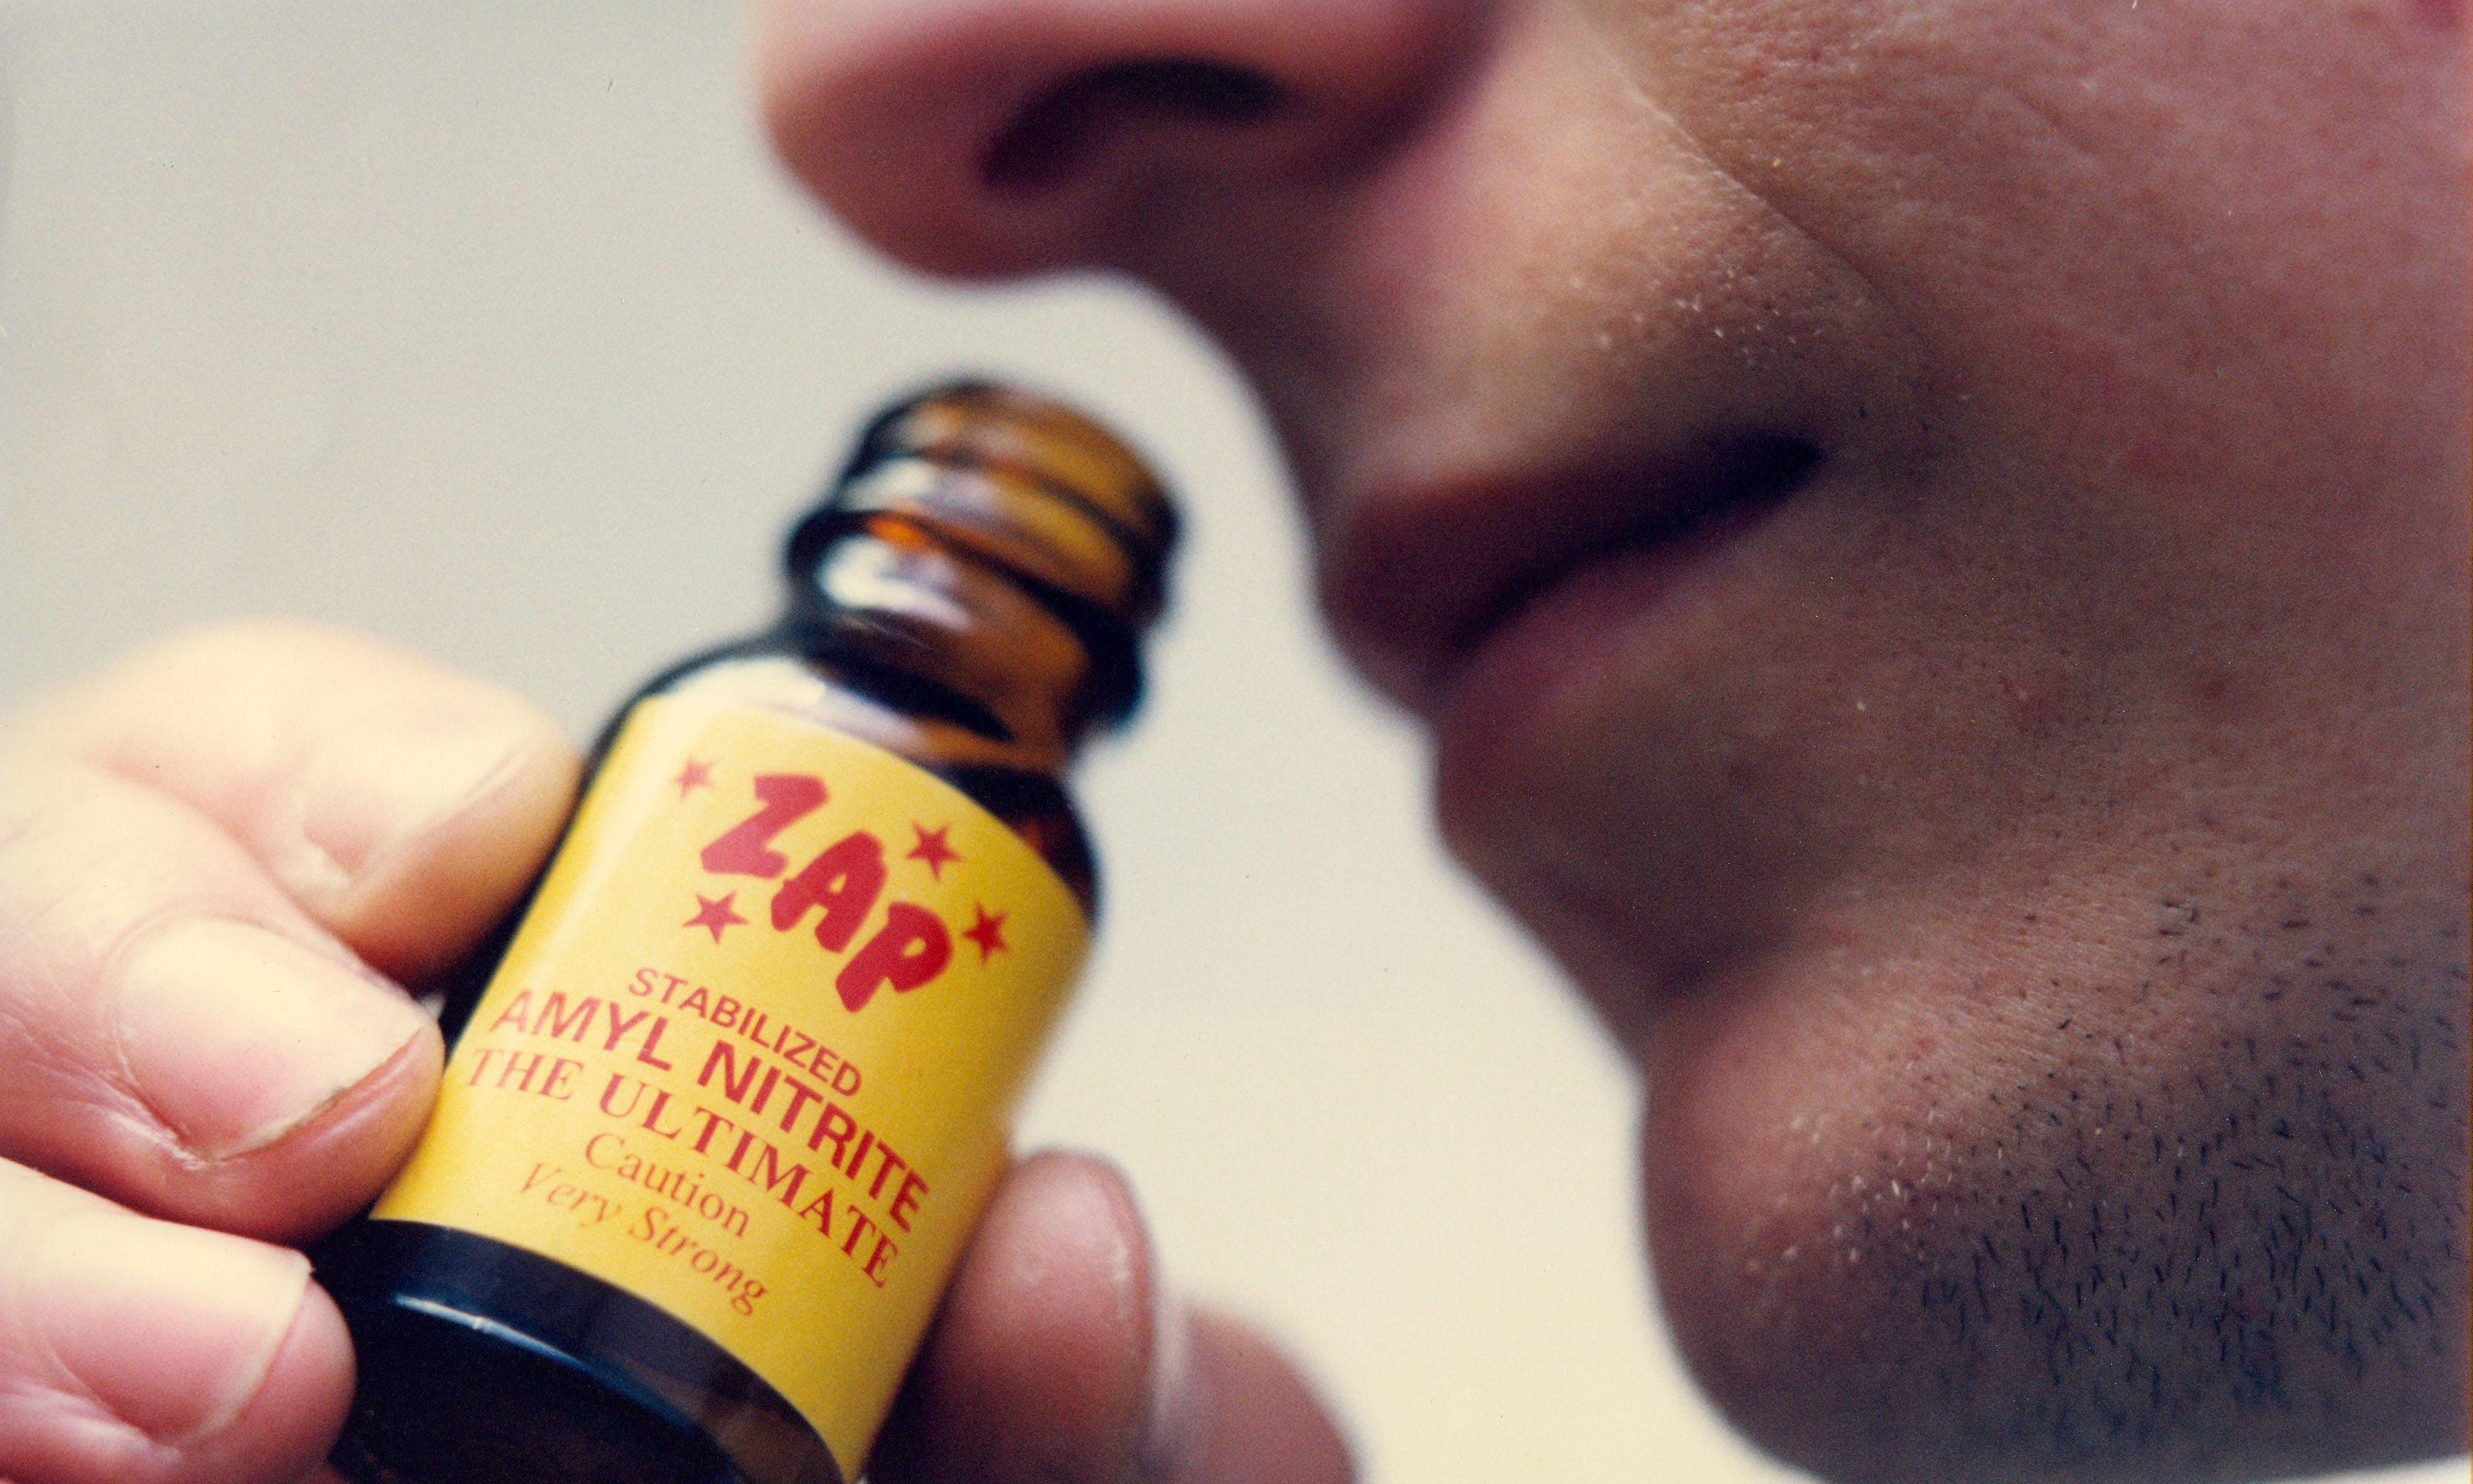 Amyl nitrite: Australia's ban on poppers is an attack on gay and bisexual men